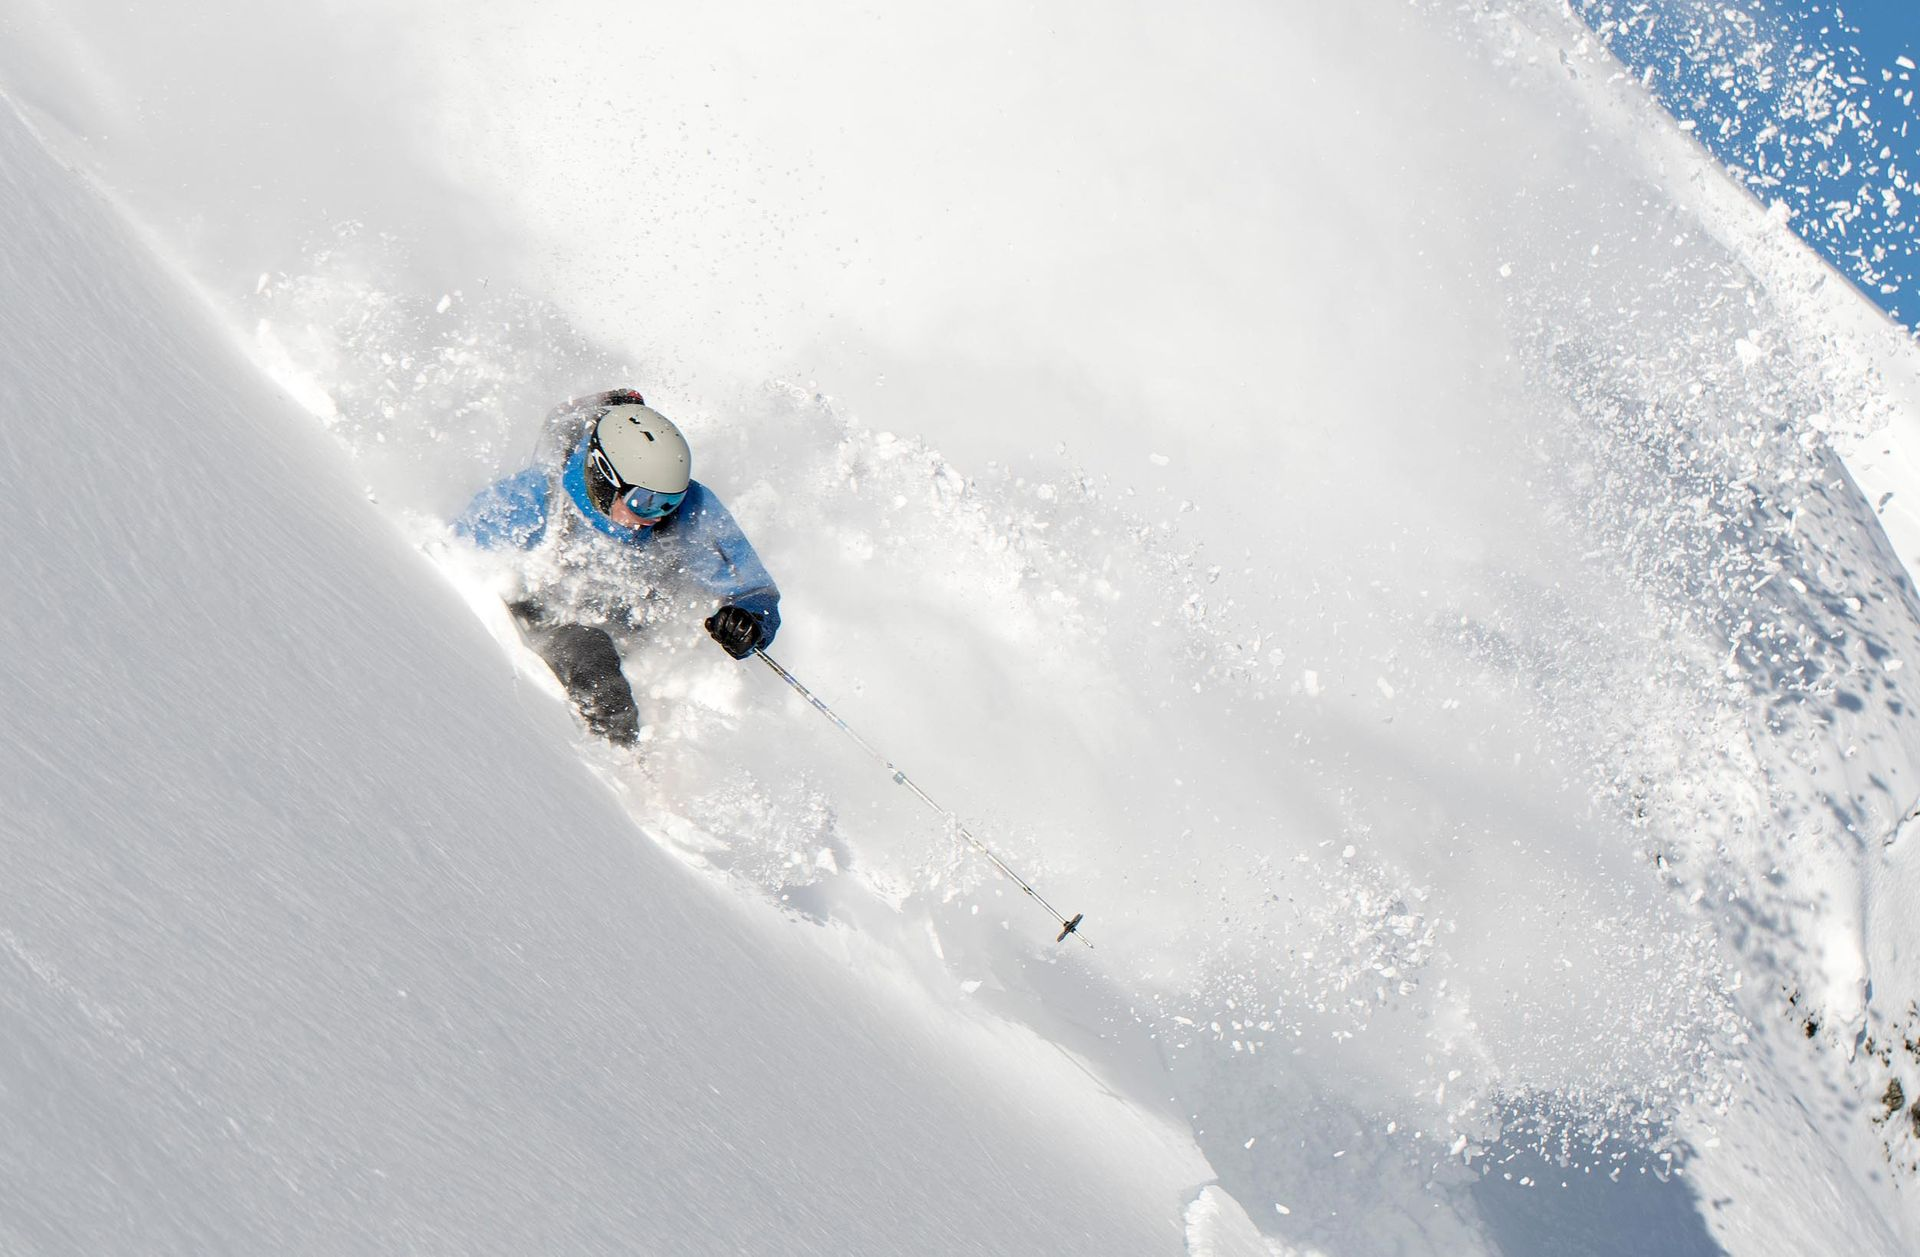 Freeriding For Two - Zillertal Zillertal, Tyrol, Austria #5fc4ee98-37e7-4cde-b6ee-8872f98bf100